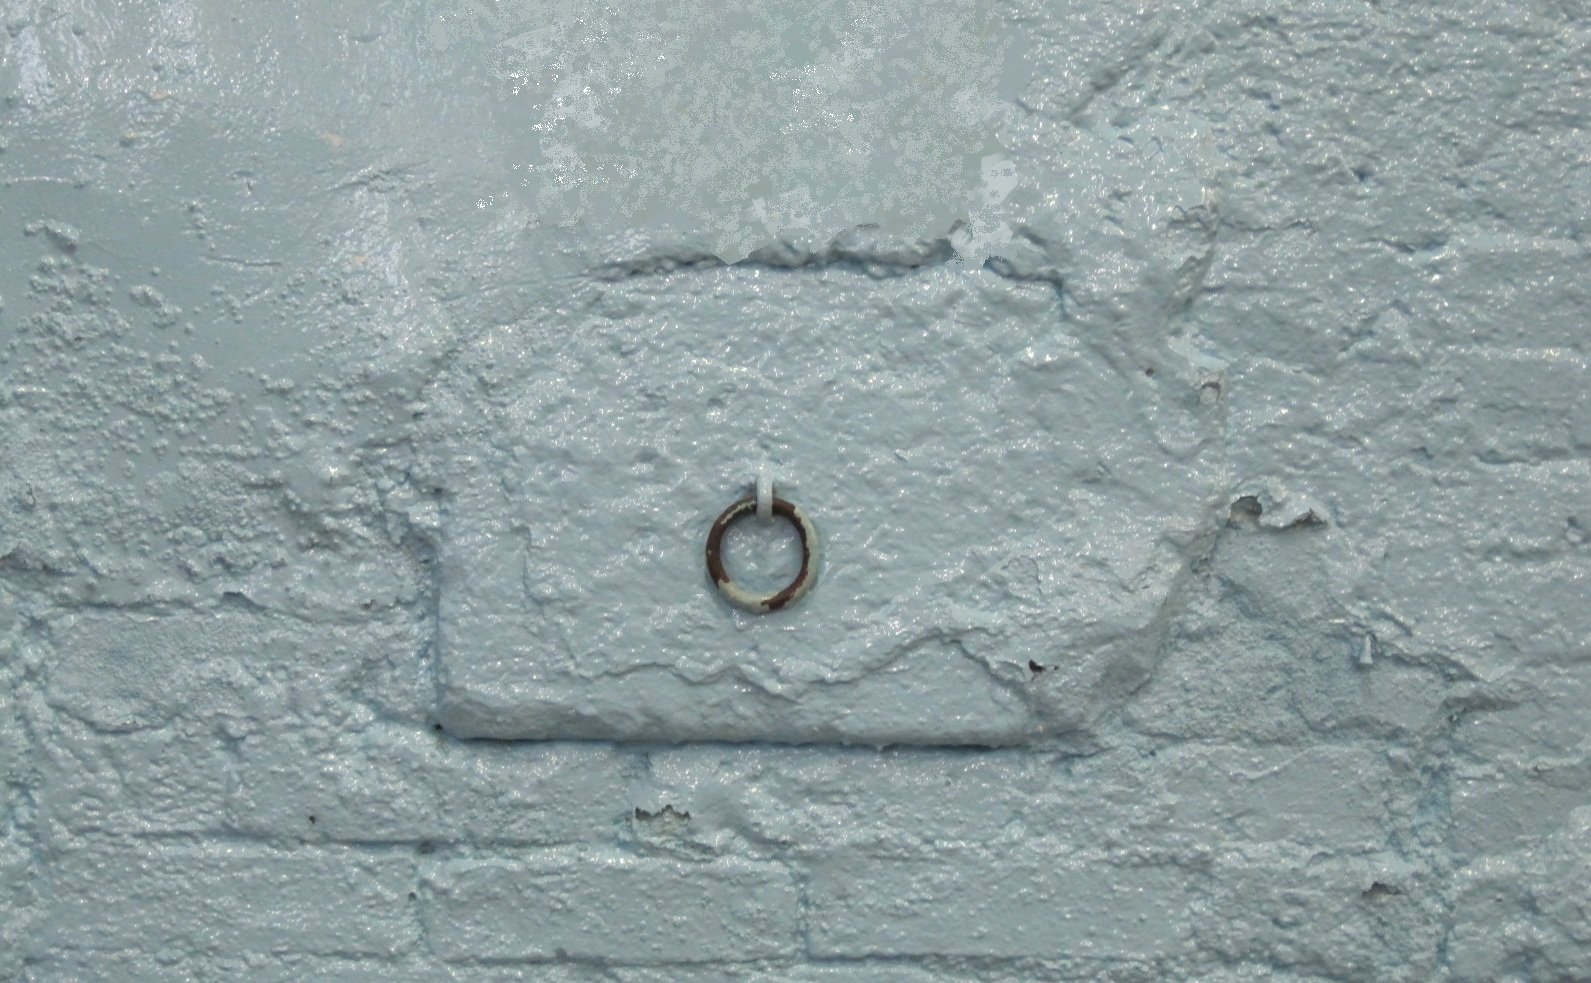 Arkwright's Horse Tethering Ring in the wall of Masson Mills